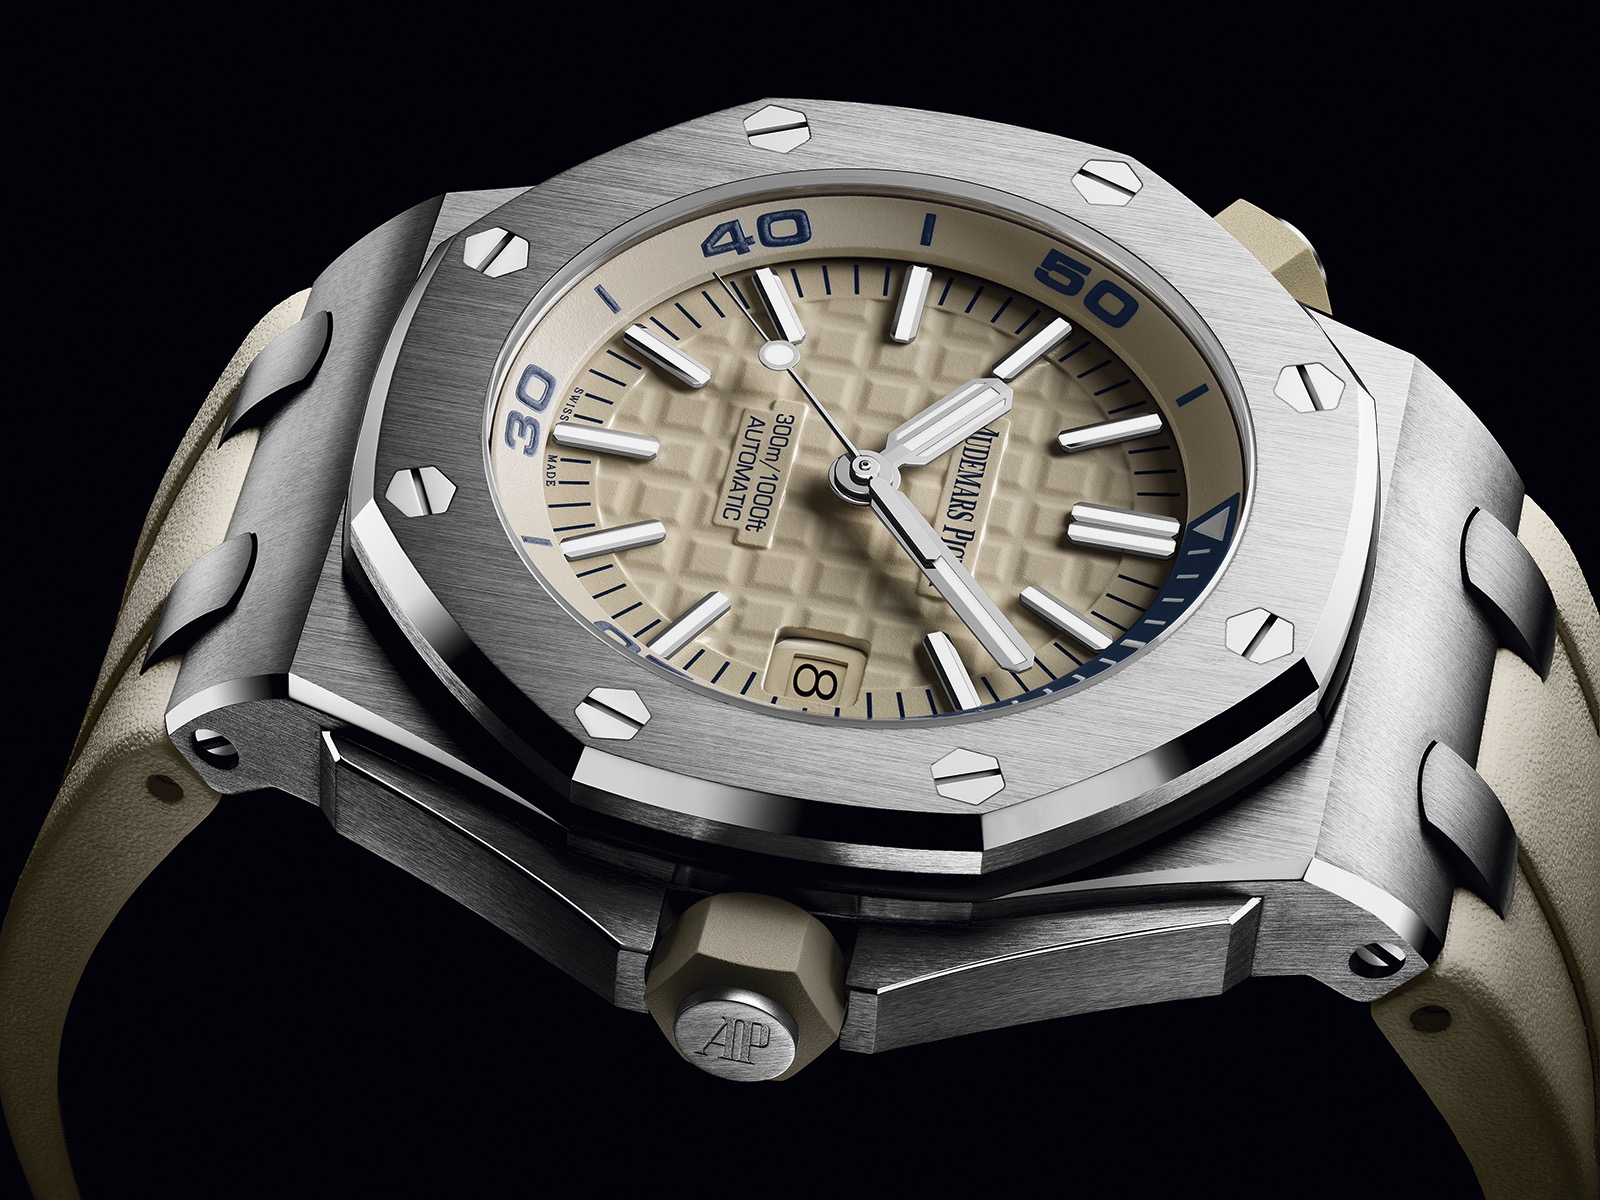 AudAudemars Piguet Royal Oak Offshore Diveremars Piguet Royal Oak Offshore DIver